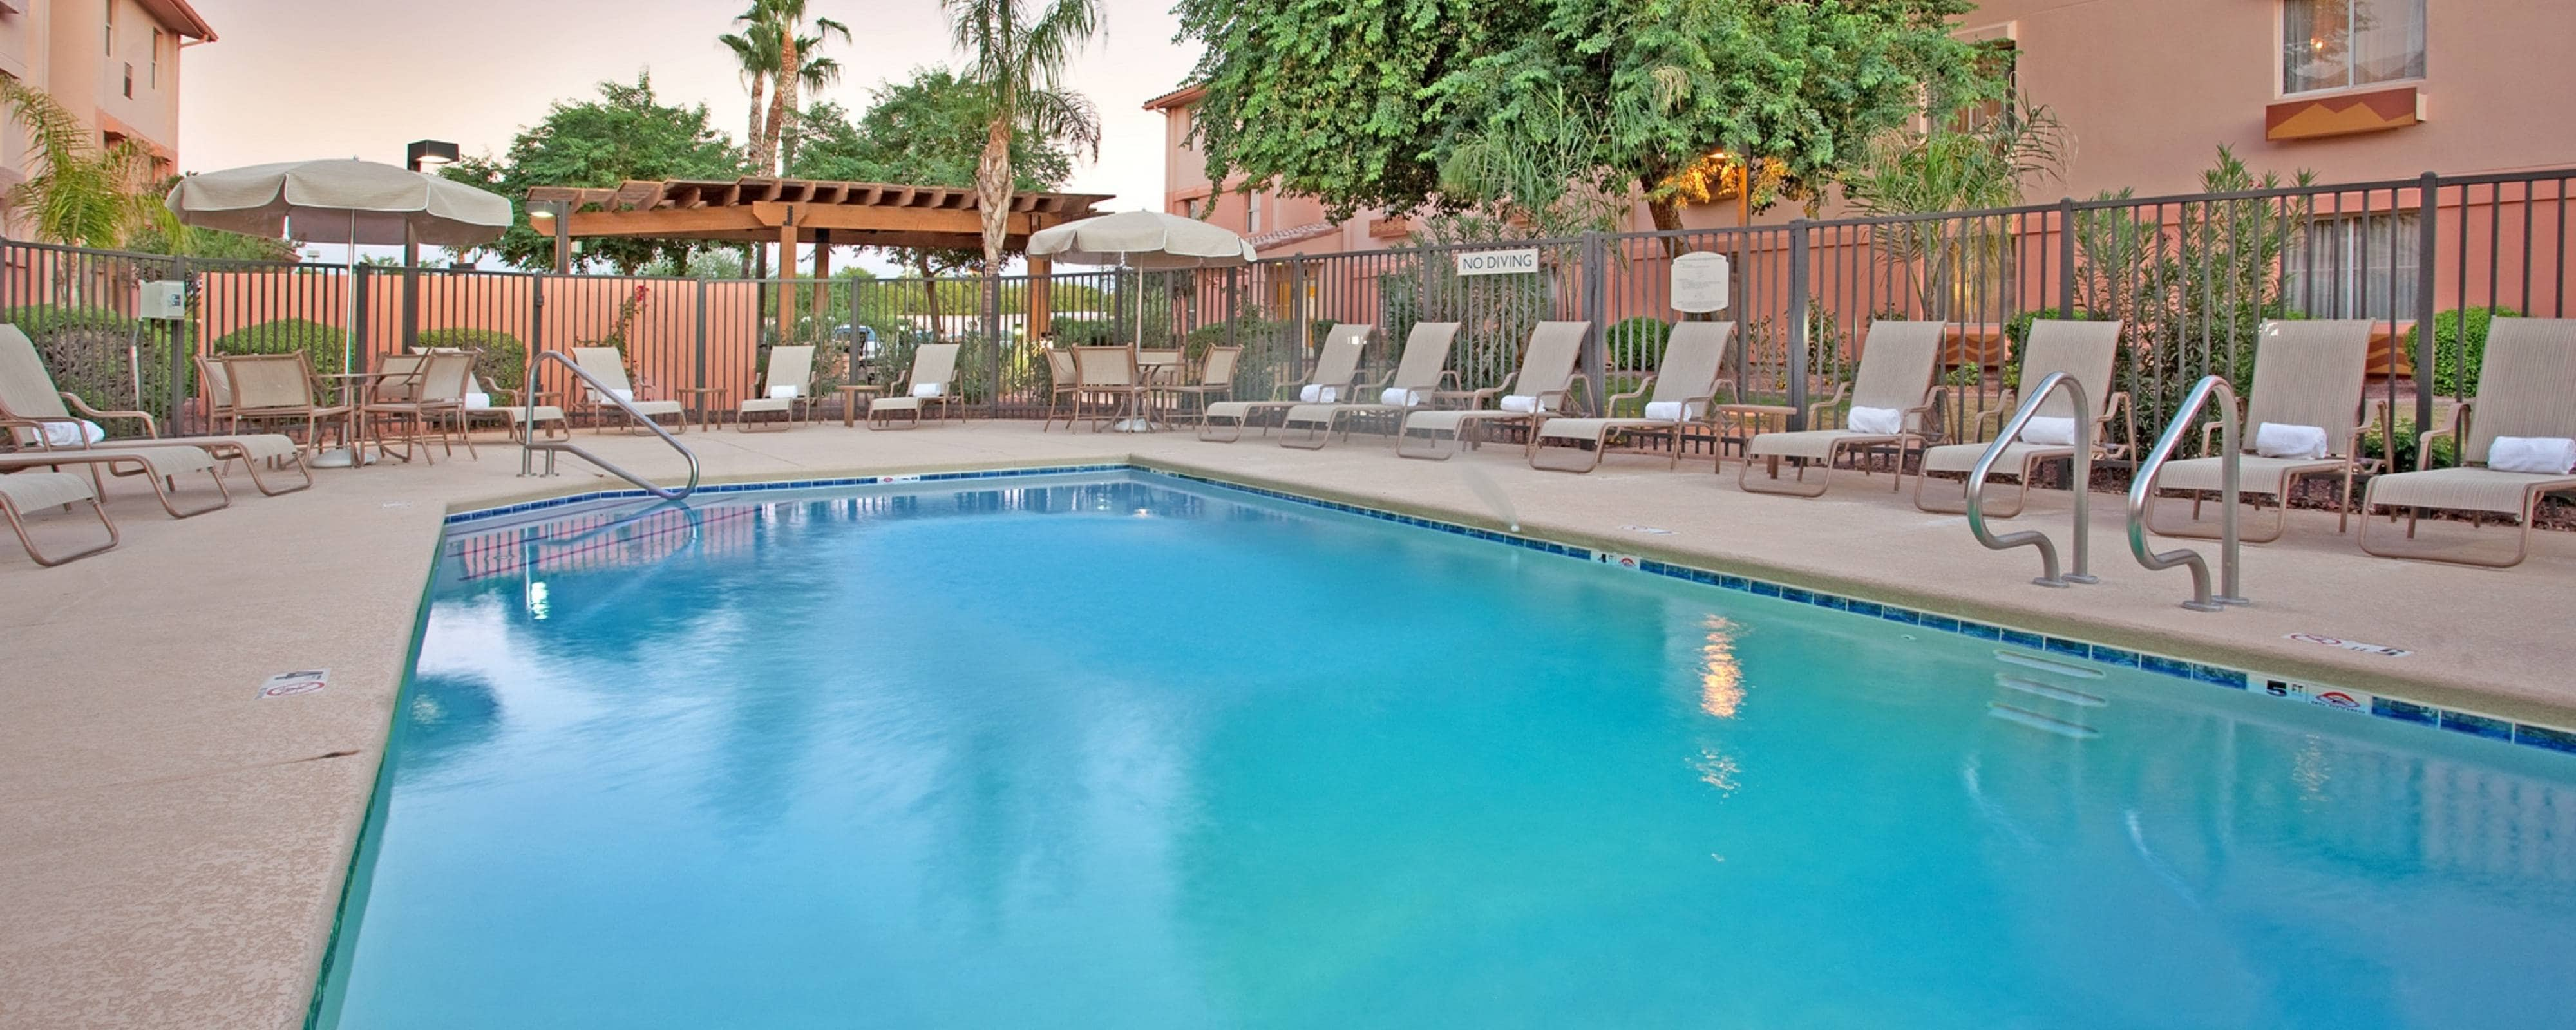 Tempe hotel outdoor pool